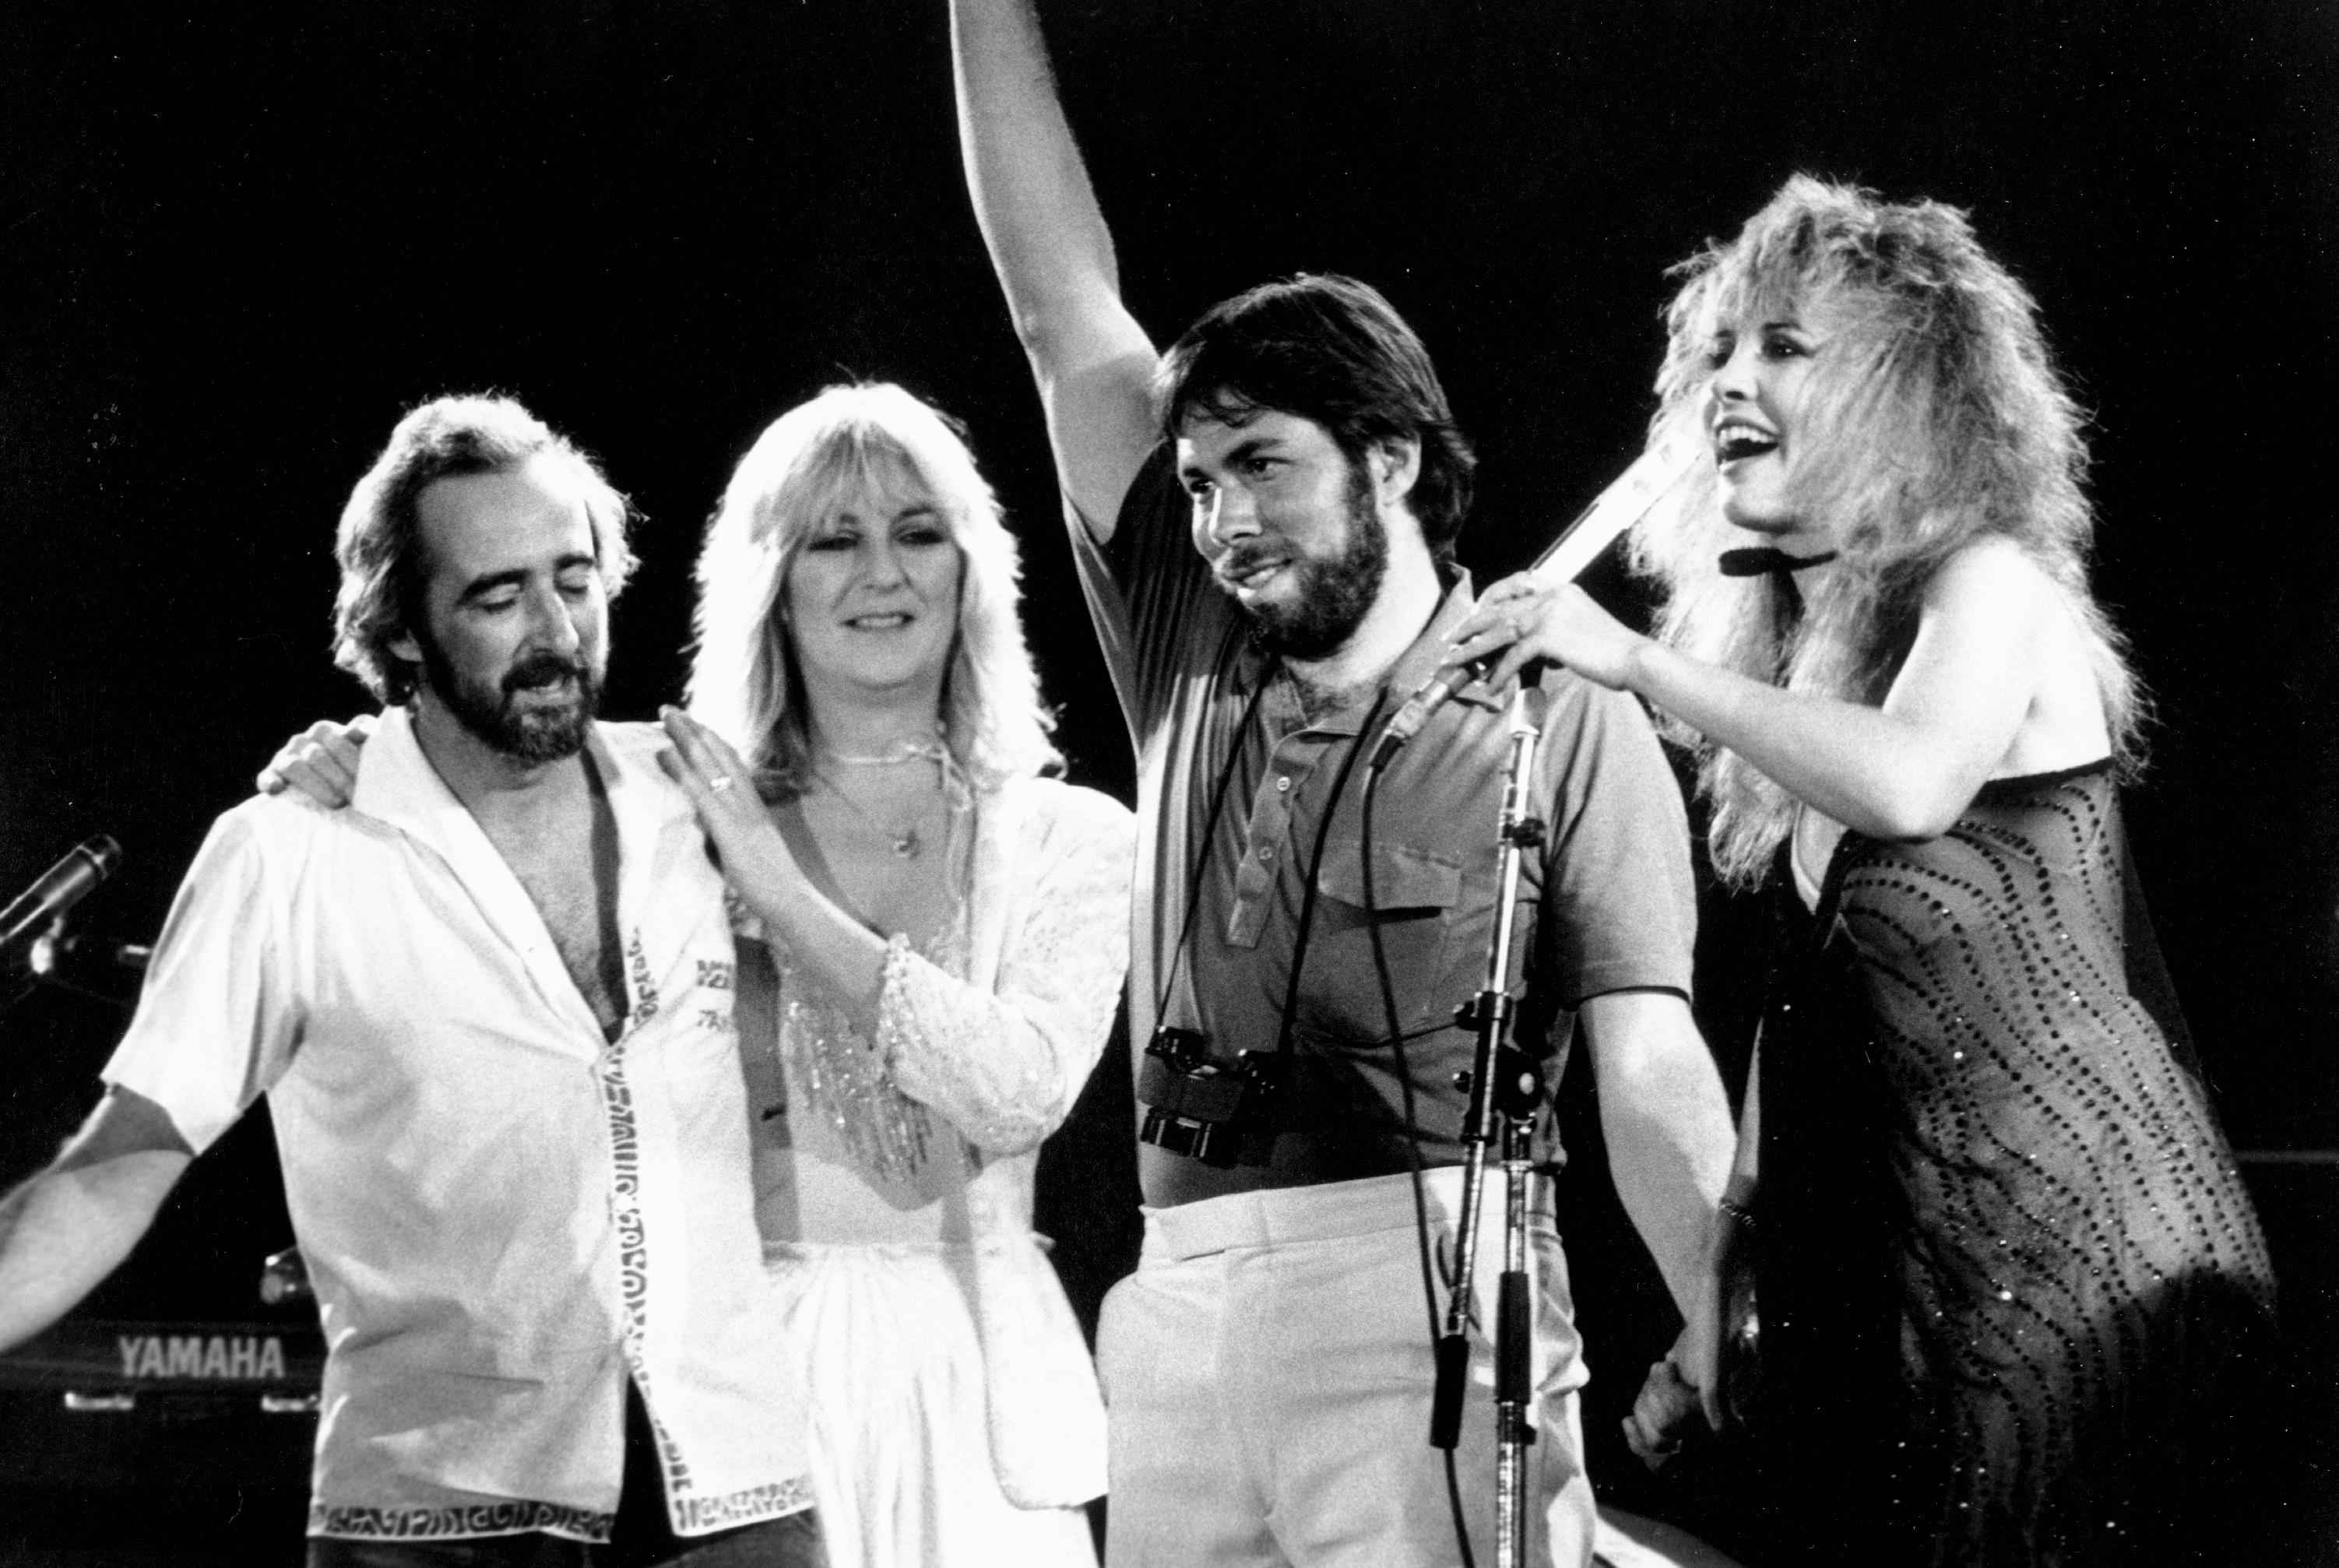 SAN BERNARDINO, CA - MAY 1983:  (L-R) John McVie, Christine McVie, organizer and executive Steve Wozniak and Stevie Nicks of